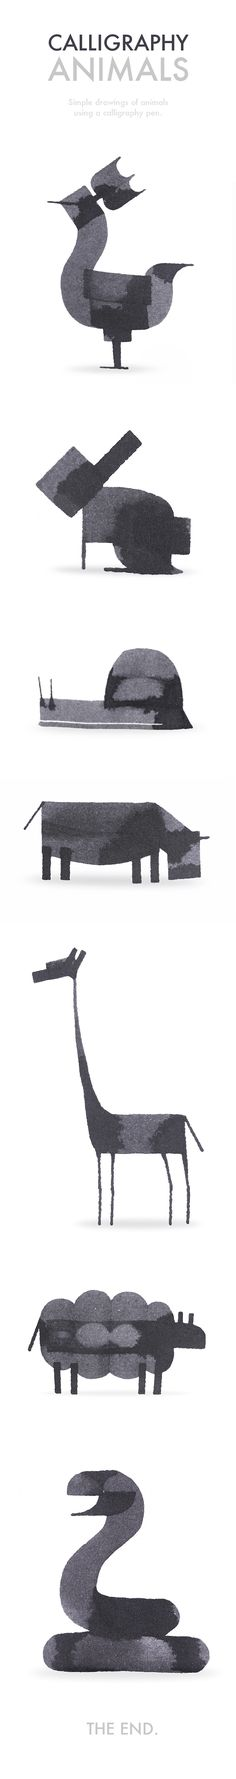 Even More Calligraphy Animals by Andrew Fox, via Behance